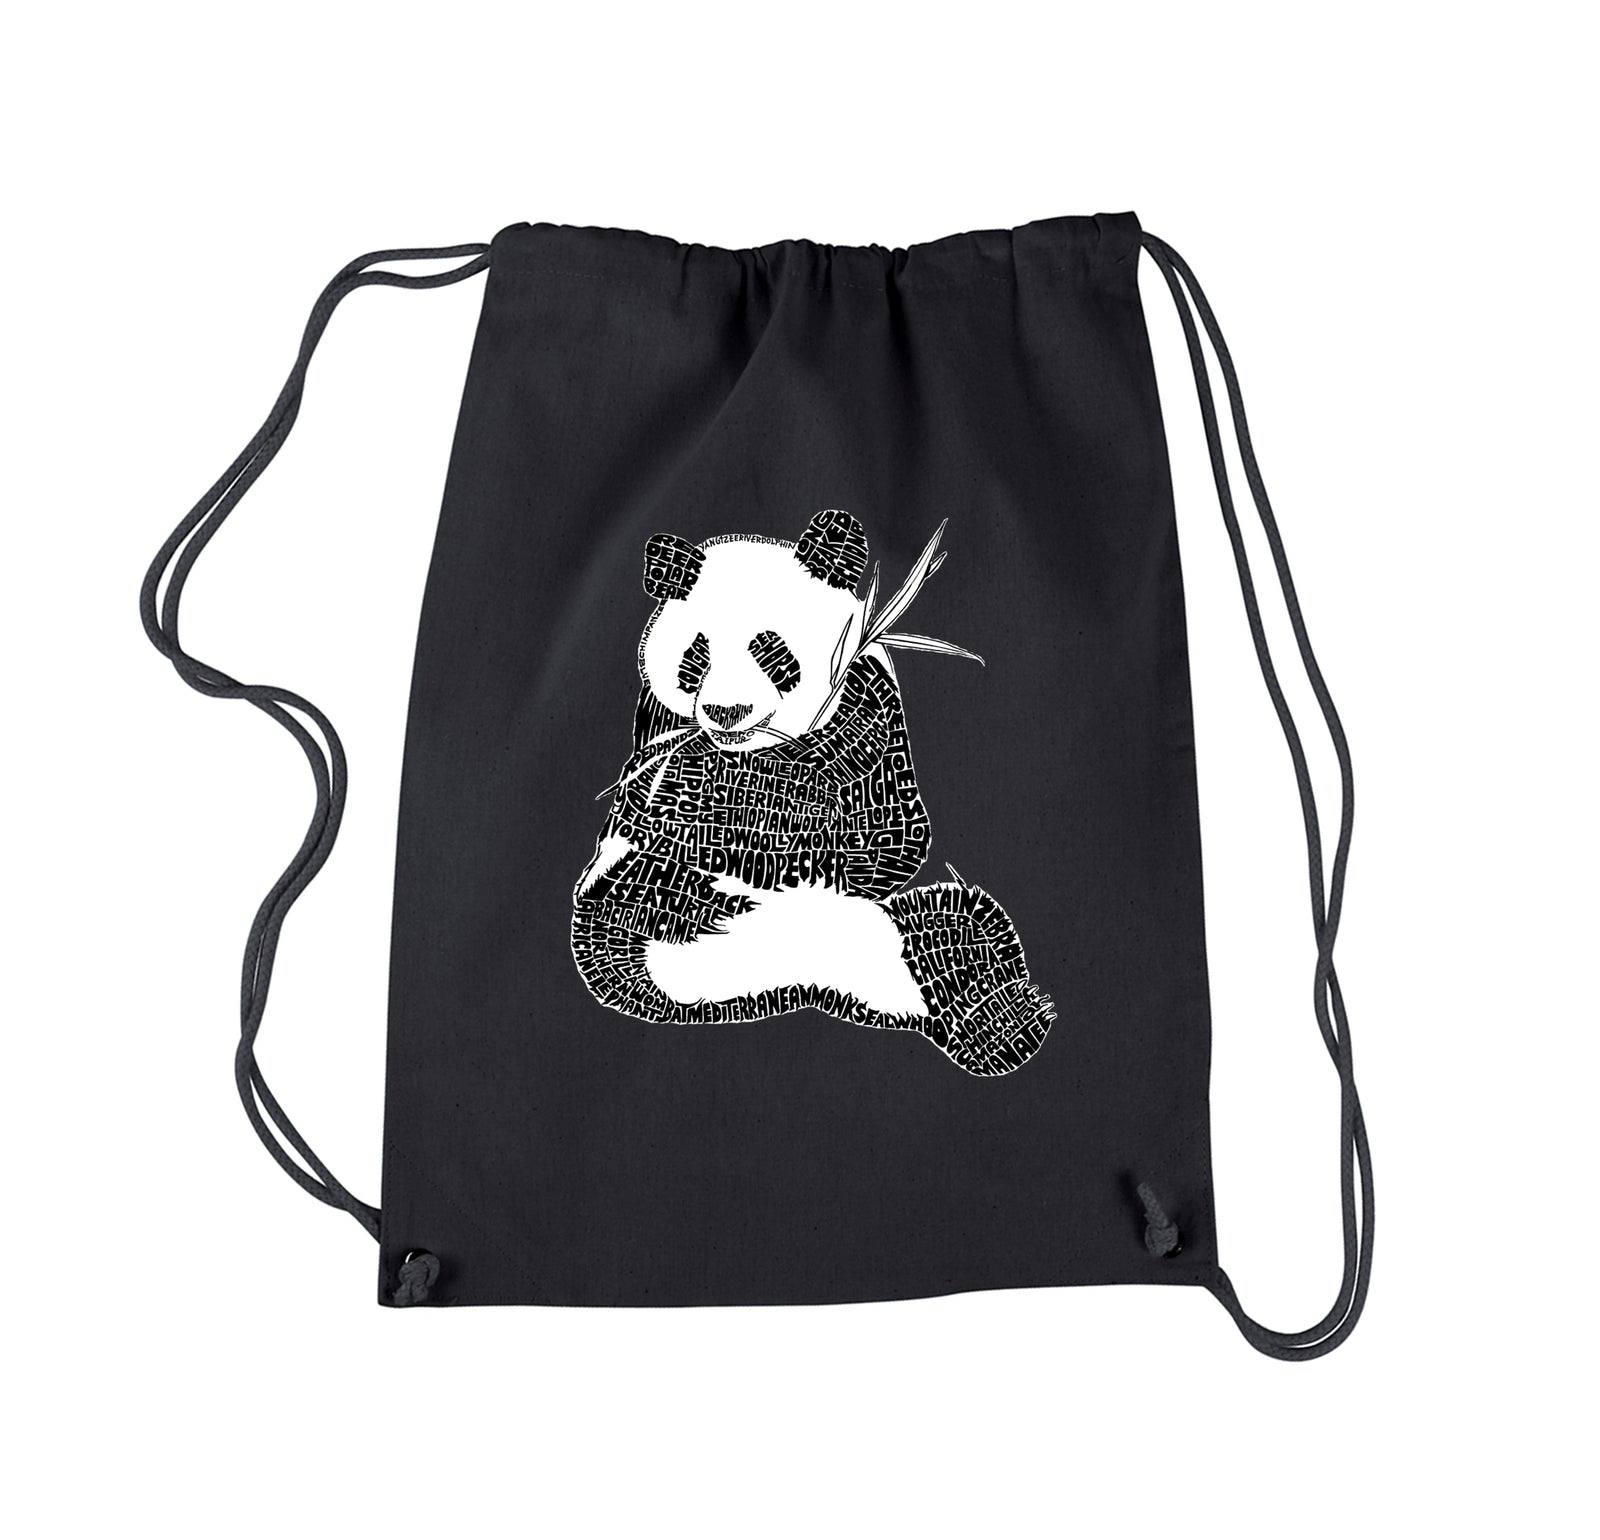 Drawstring Backpack - Endangered SPECIES